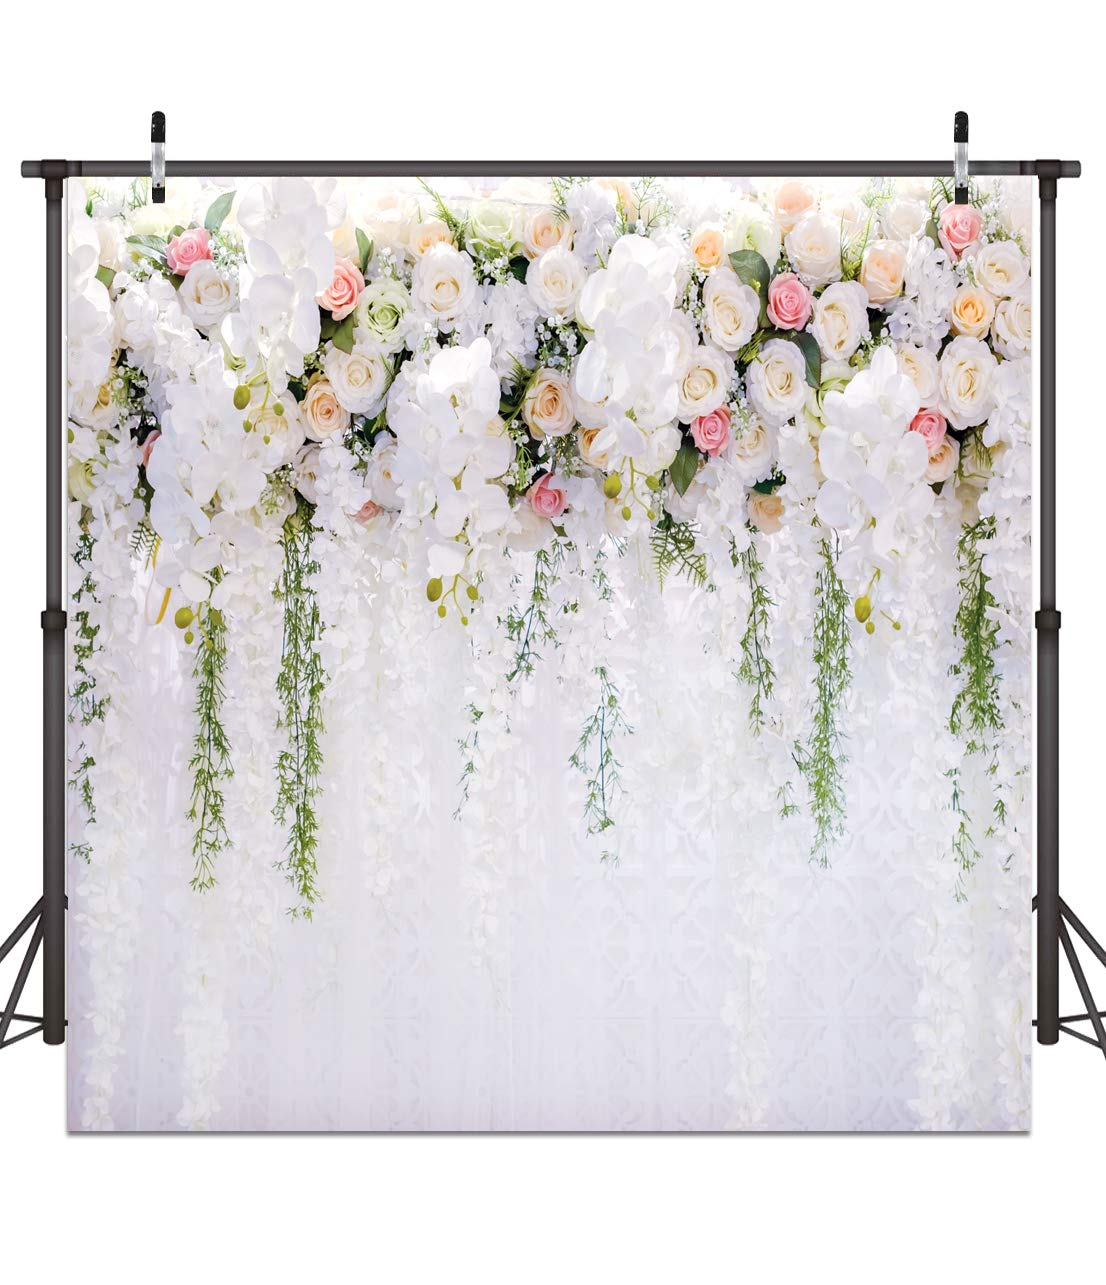 Dudaacvt 10x10FT White Flower Backdrop Curtain Floral 3D Flower Wedding Birthday Party Background Photo Backdrop Carnival Party Backdrop D073 by Dudaacvt